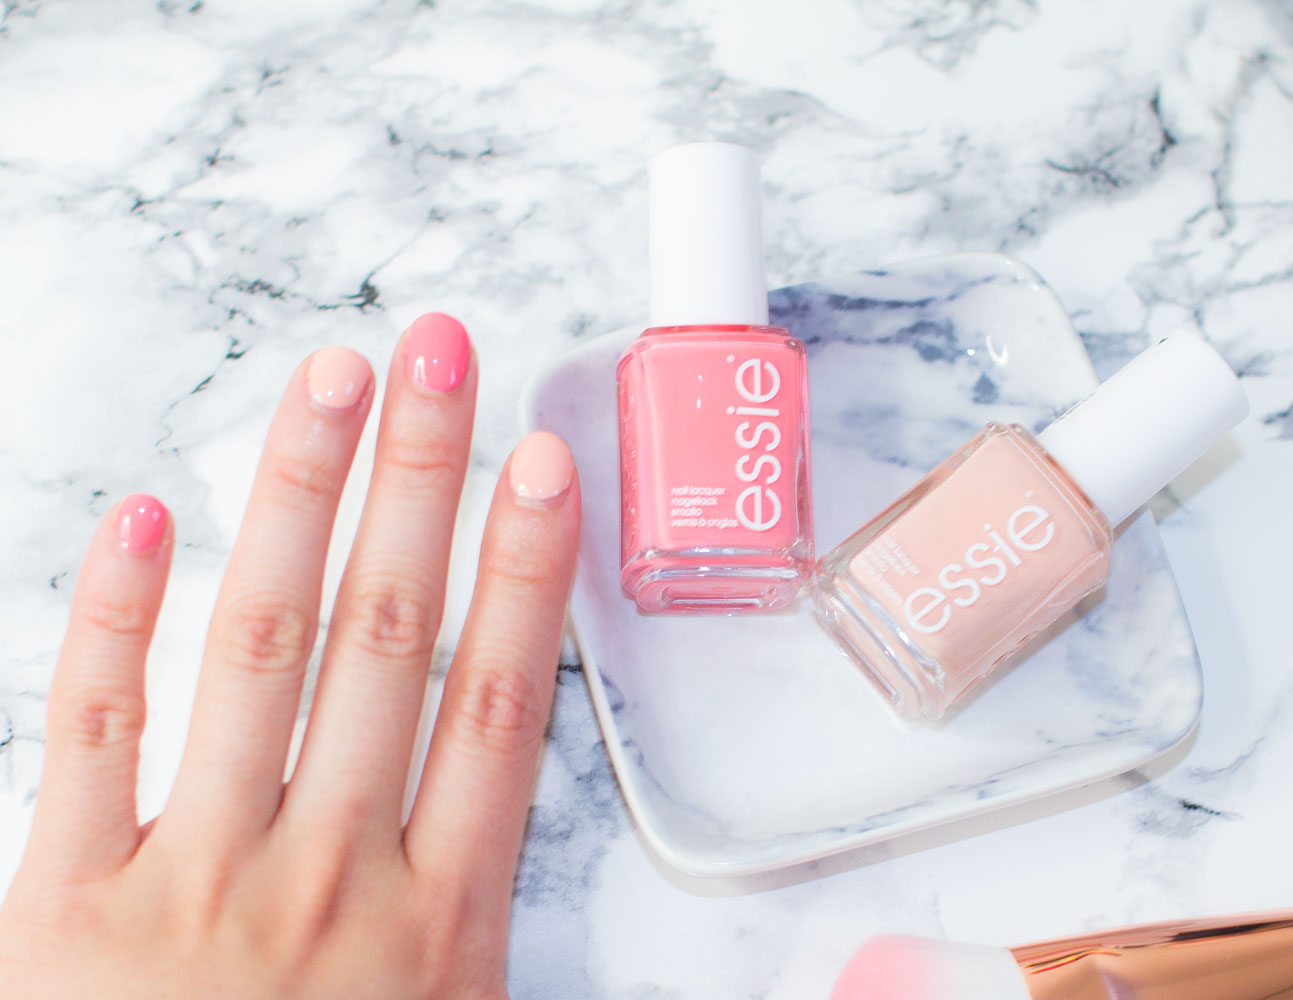 Essie Spring 2016 Nail Polishes - Lounge Lover and High Class Affair Review Swatches